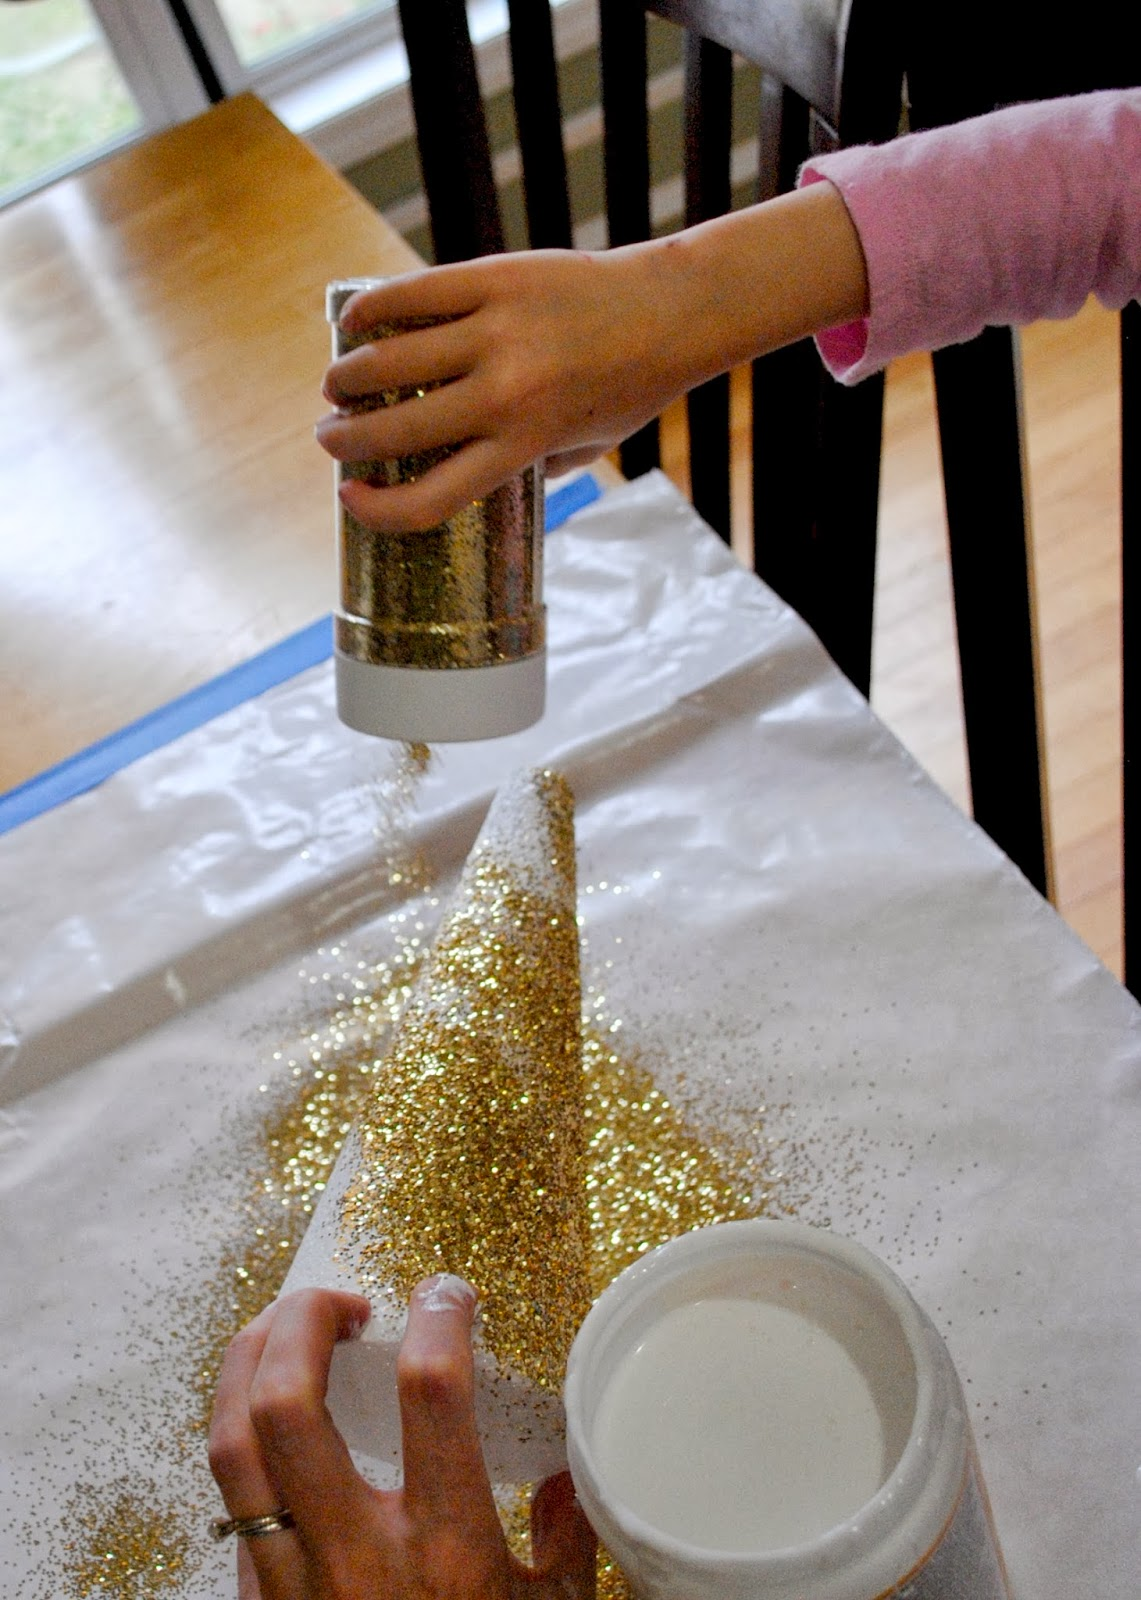 Pour+Glitter+on+Cone.jpg